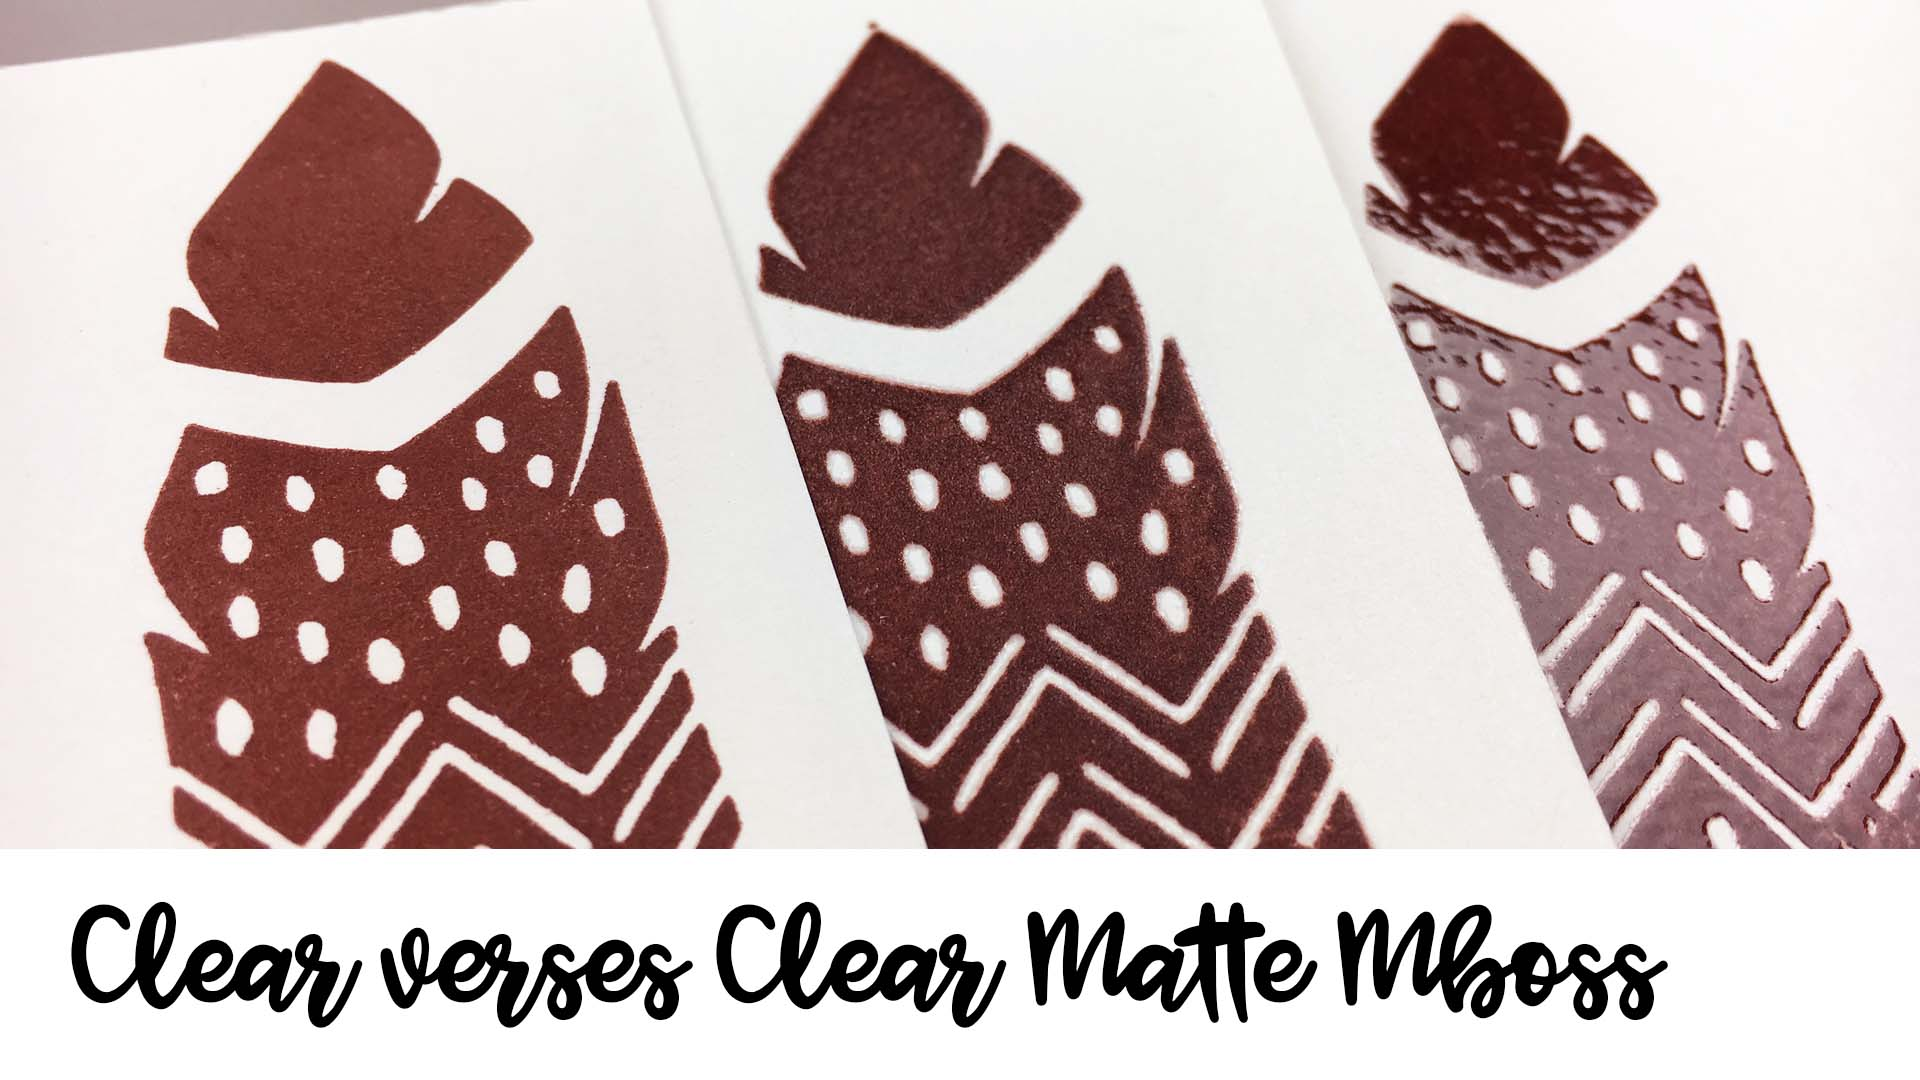 Comparison of Clear and Clear Matte Mboss